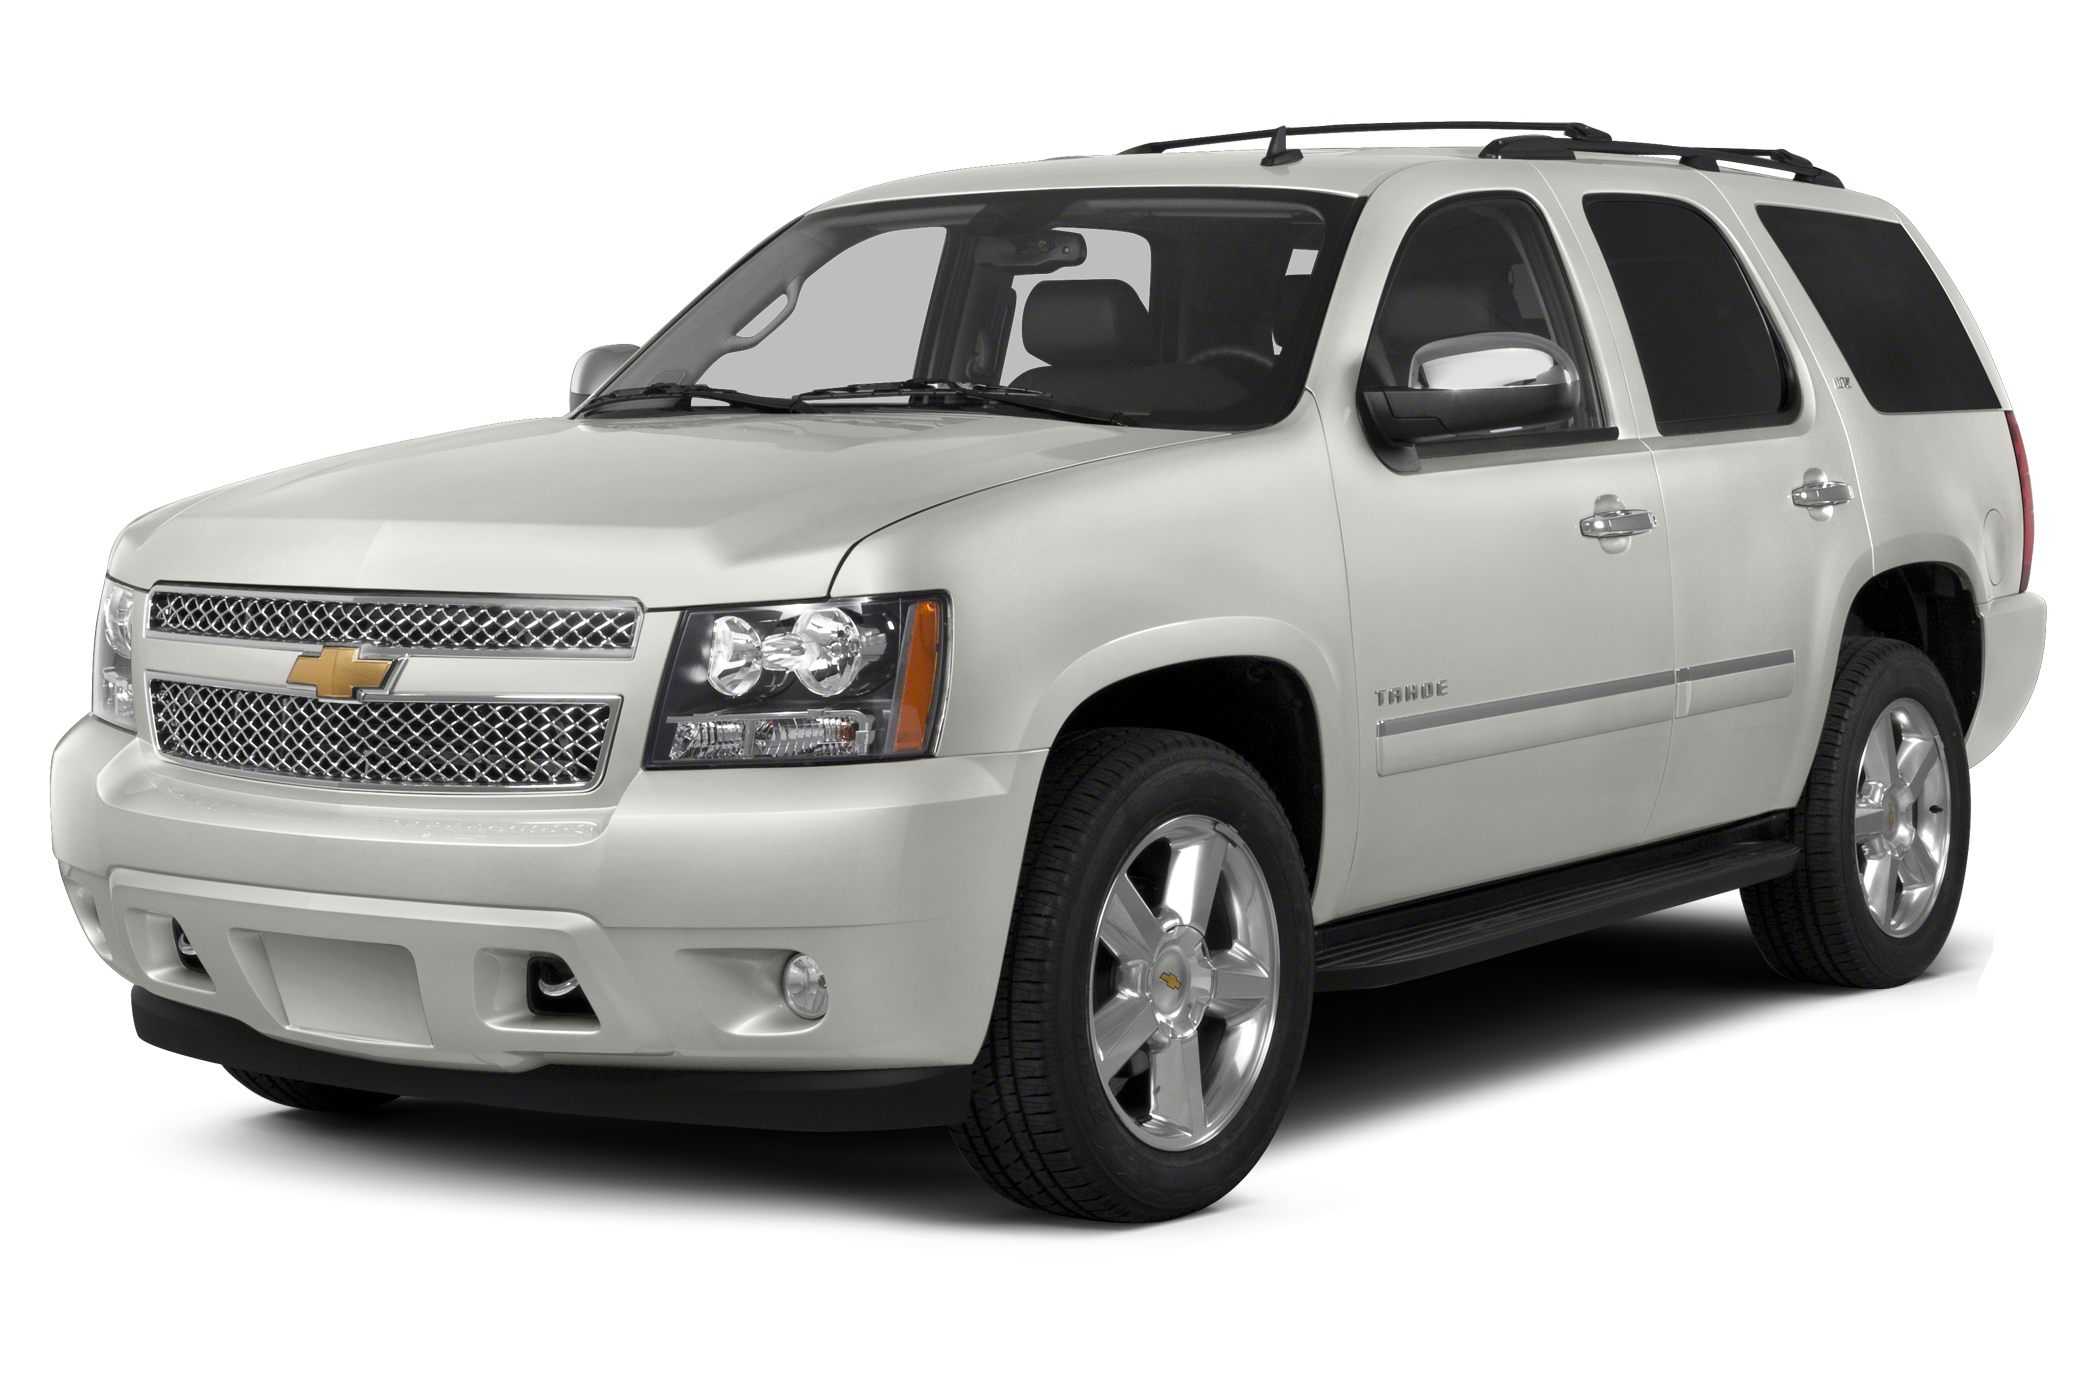 2013 Chevrolet Tahoe LS SUV for sale in Chapmanville for $35,000 with 24,693 miles.